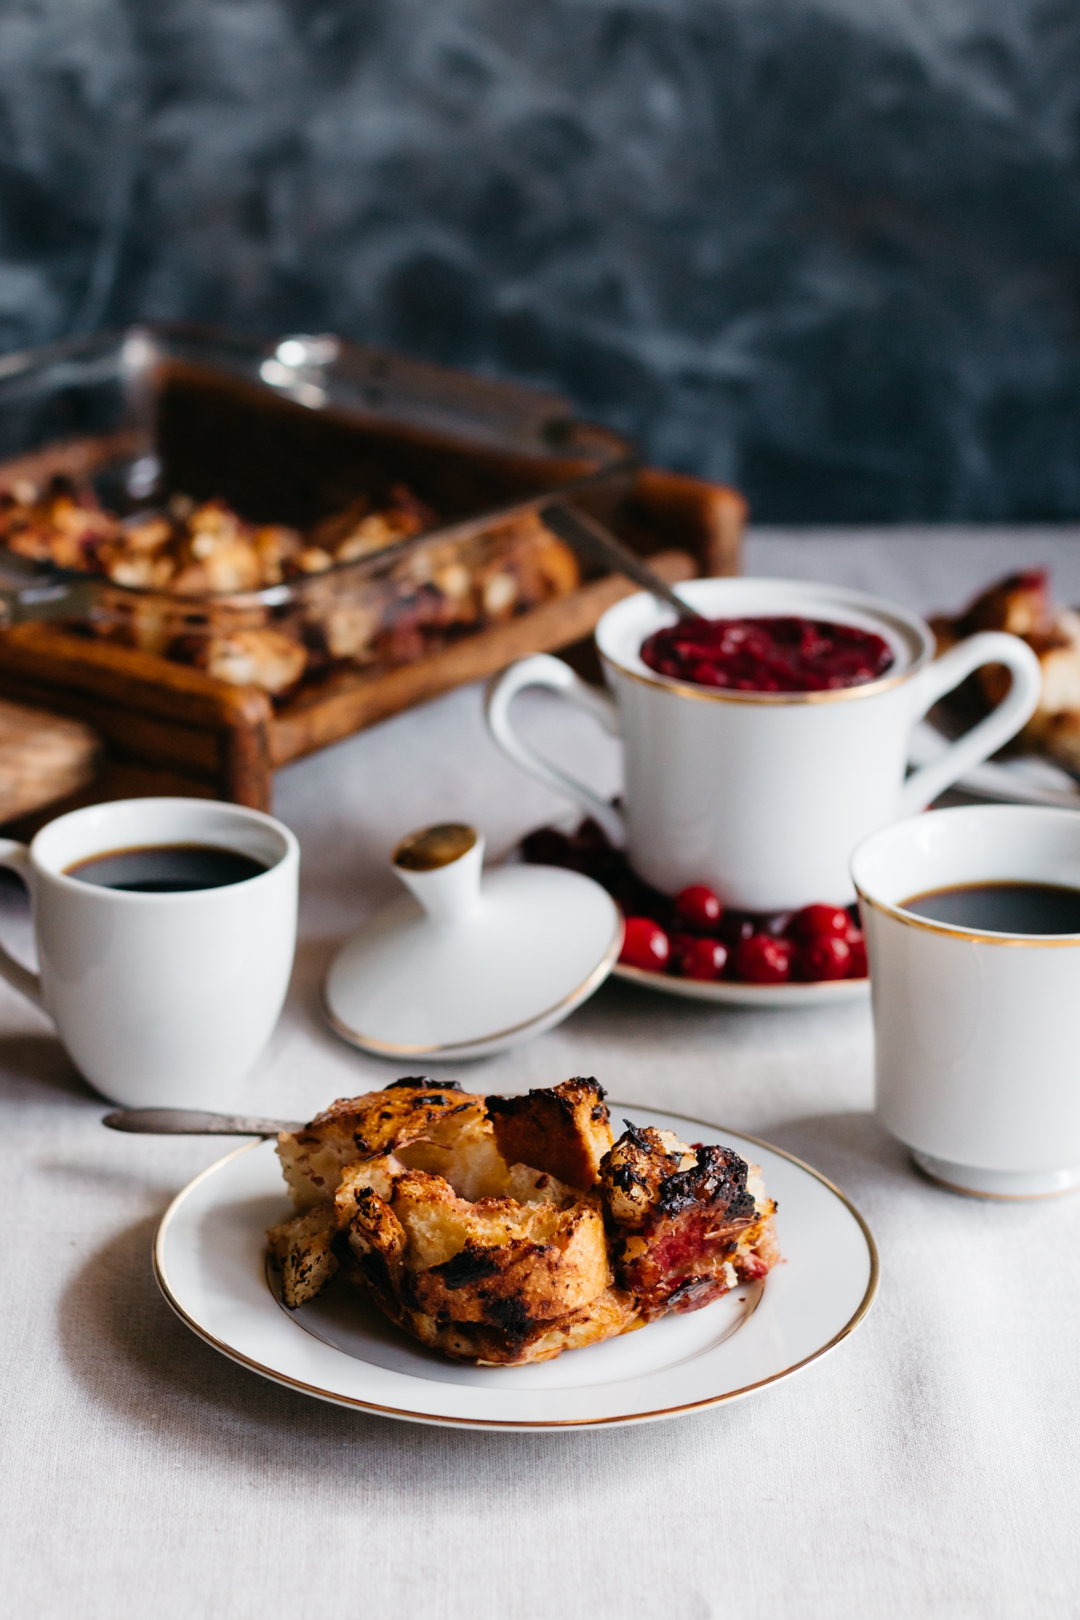 Vertical shot of a serving of savory French toast casserole on a plate with coffee cups, cranberry sauce, and the casserole in the background.